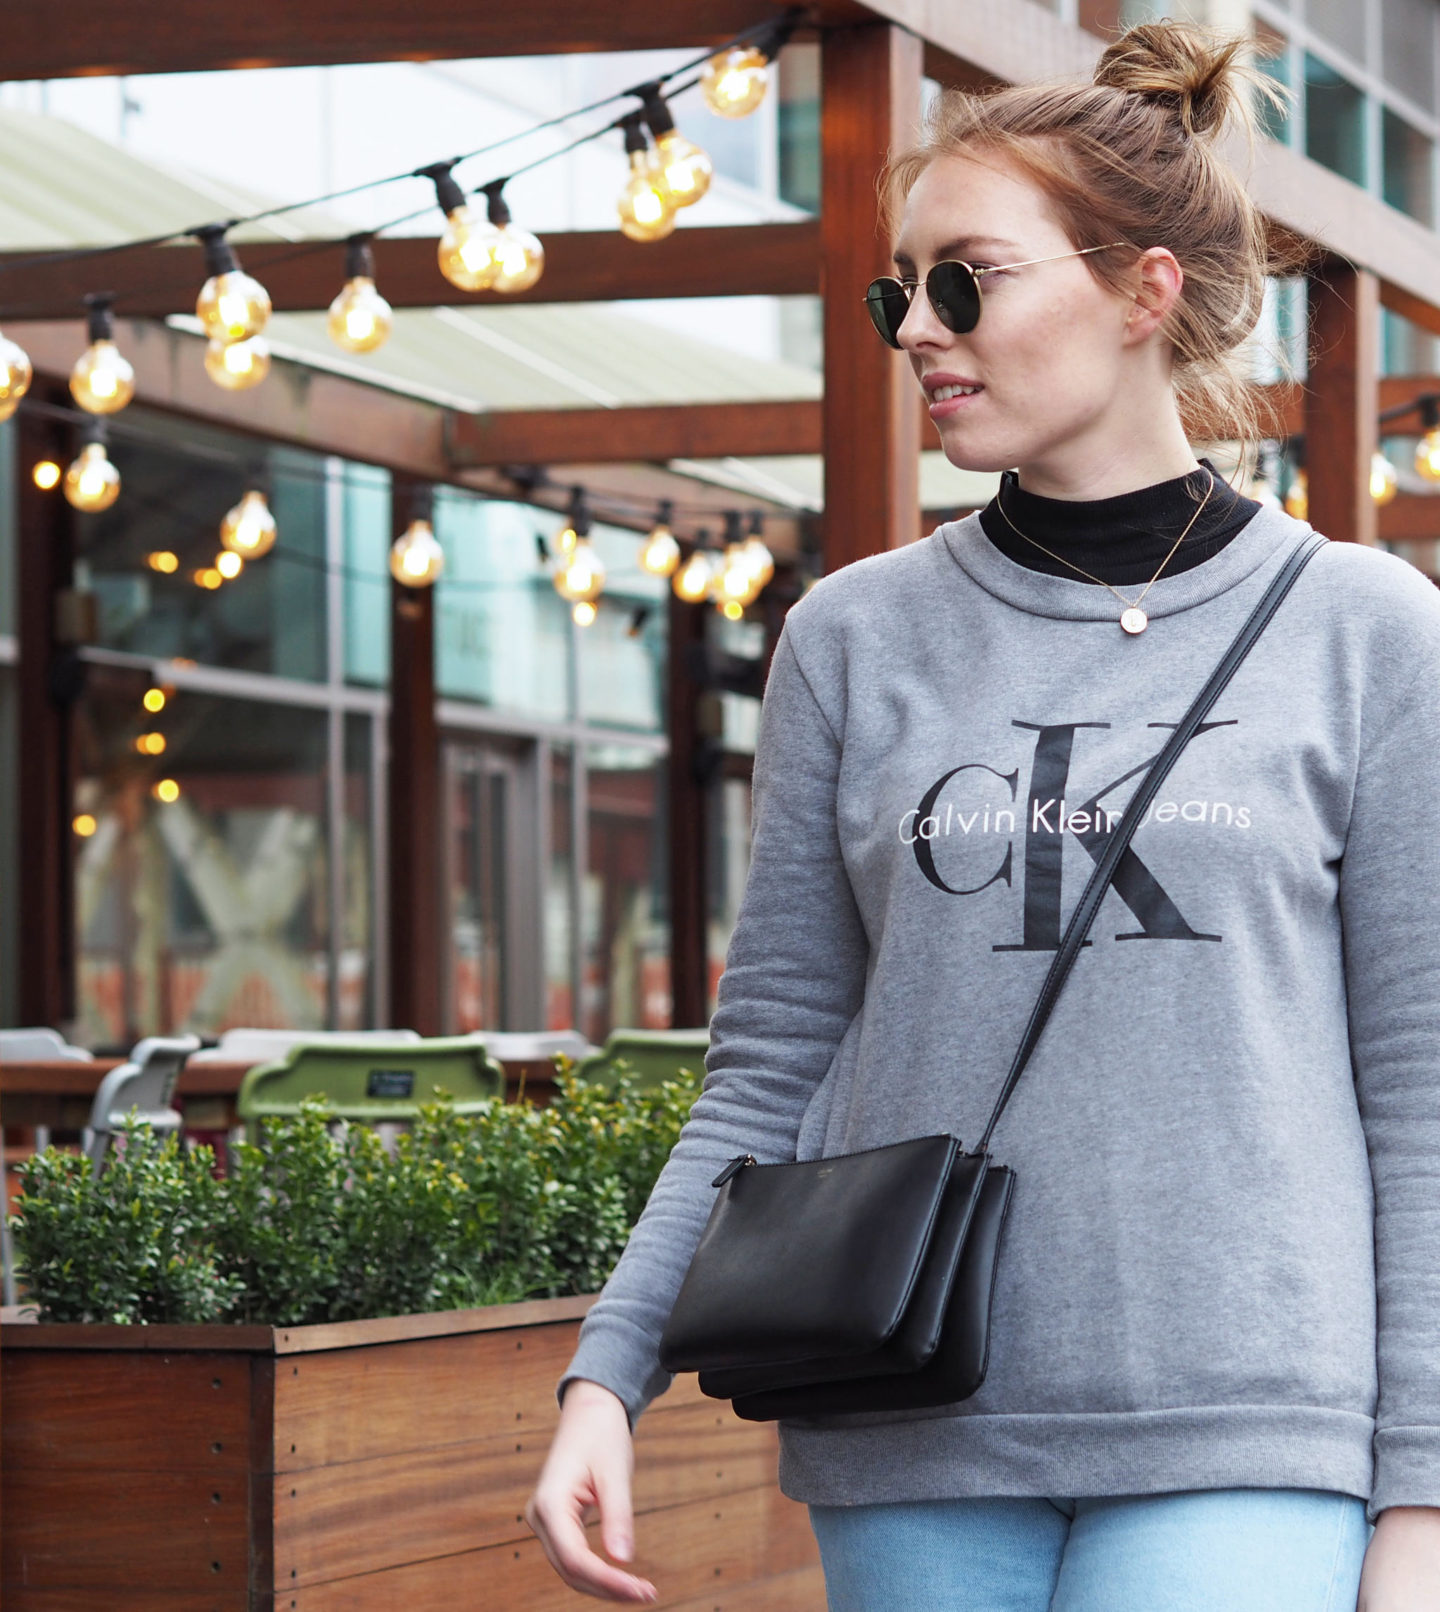 Calvin Klein Sweatshirt and Celine Trio